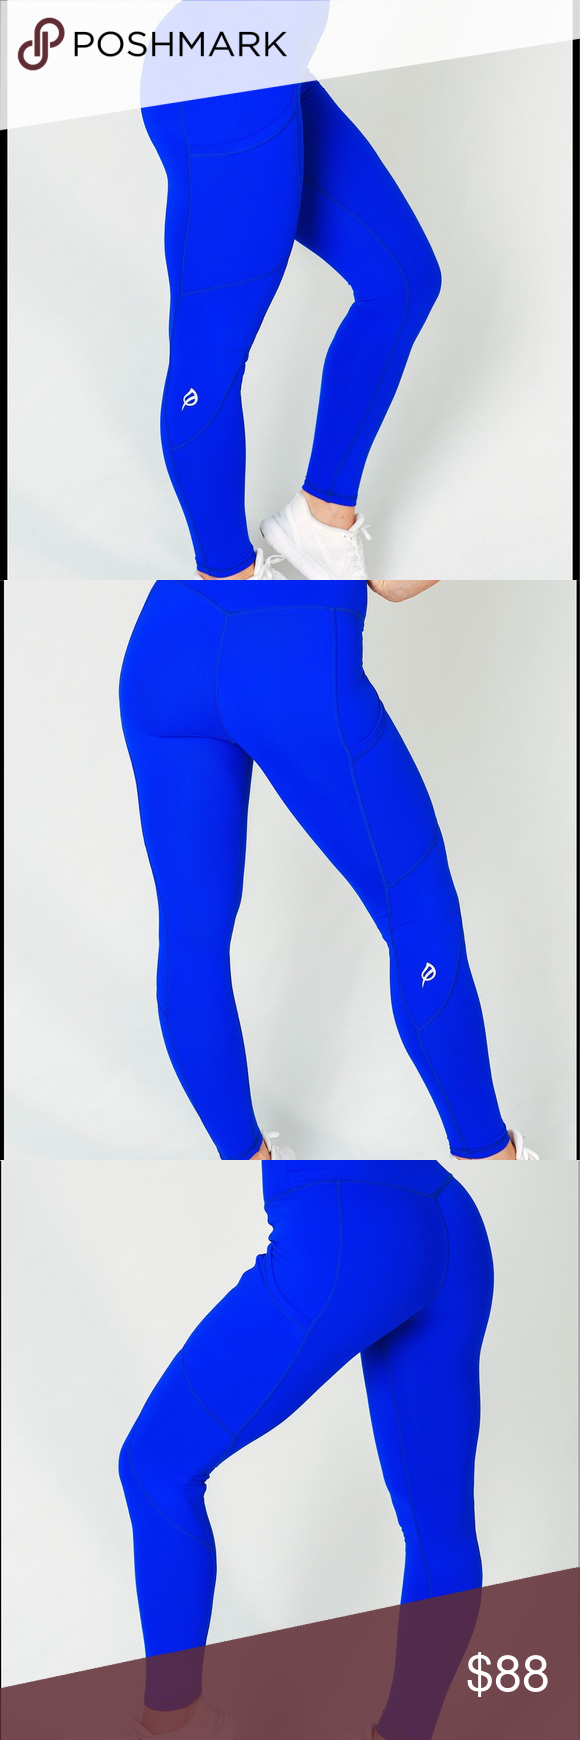 Ptula Sami Leggings In Cobalt Blue Small Clothes Design Leggings Are Not Pants Beautiful Leggings Home check phone number country phone codes phone code by city or country name. pinterest